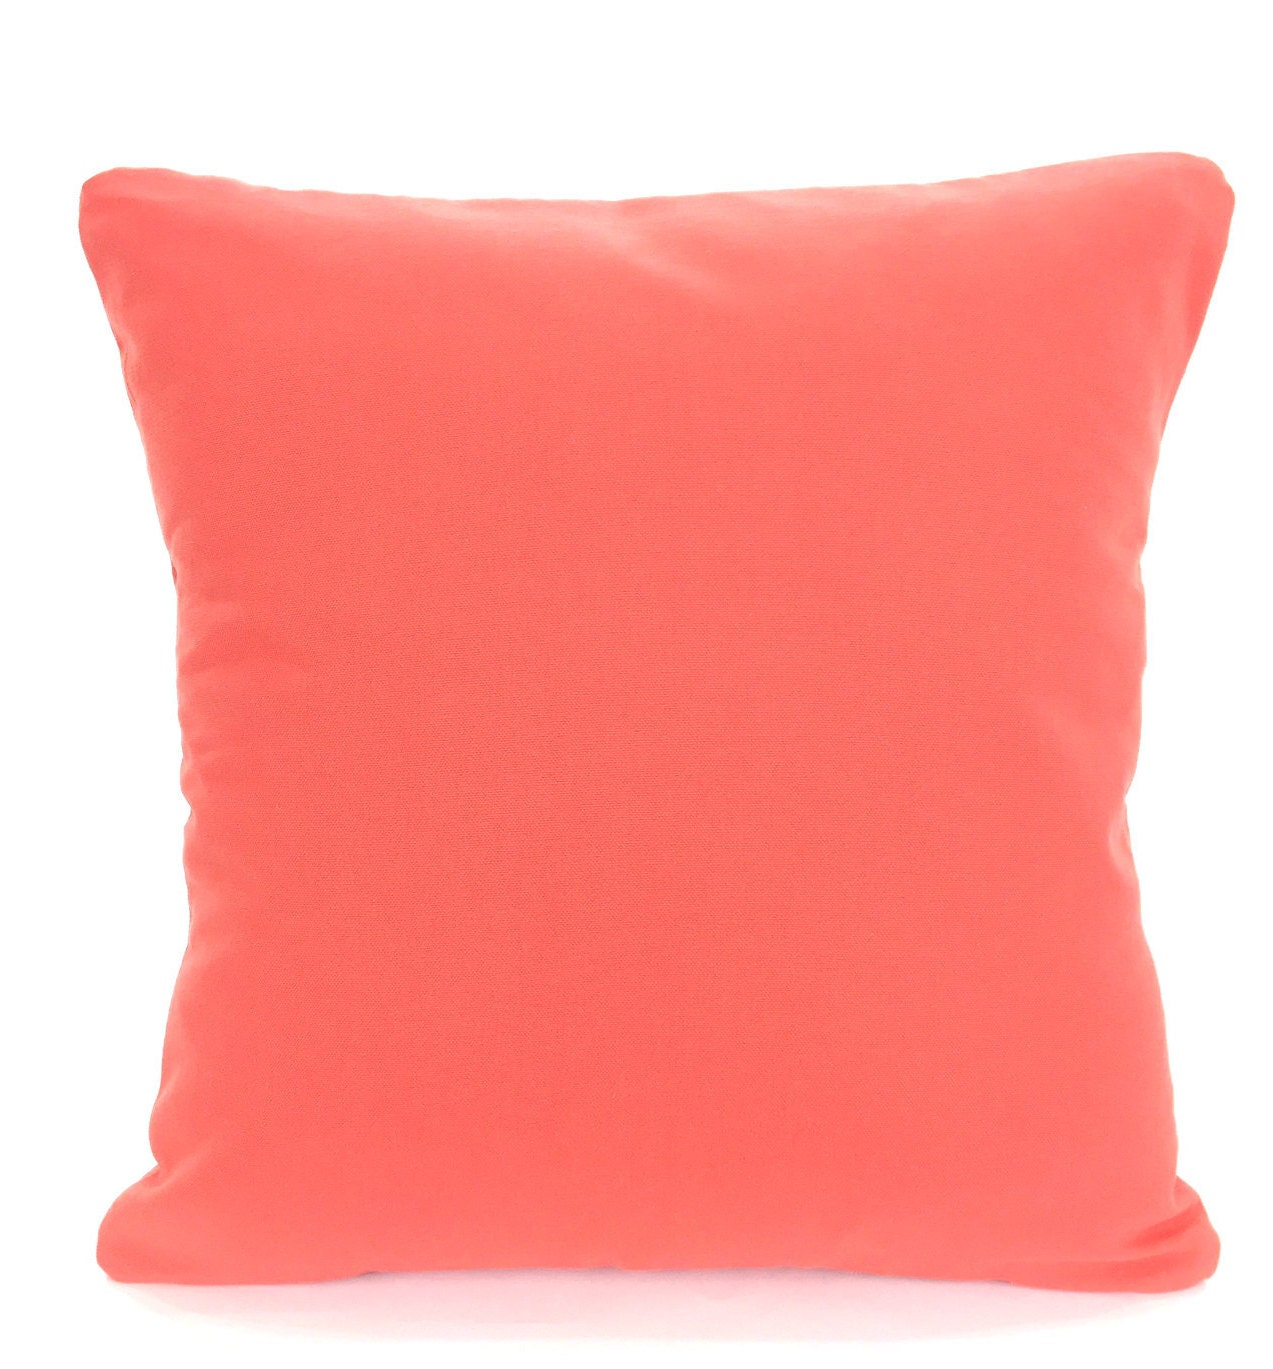 Throw Pillows With Coral : Solid Coral Pillow Covers Decorative Throw Pillow Cushion